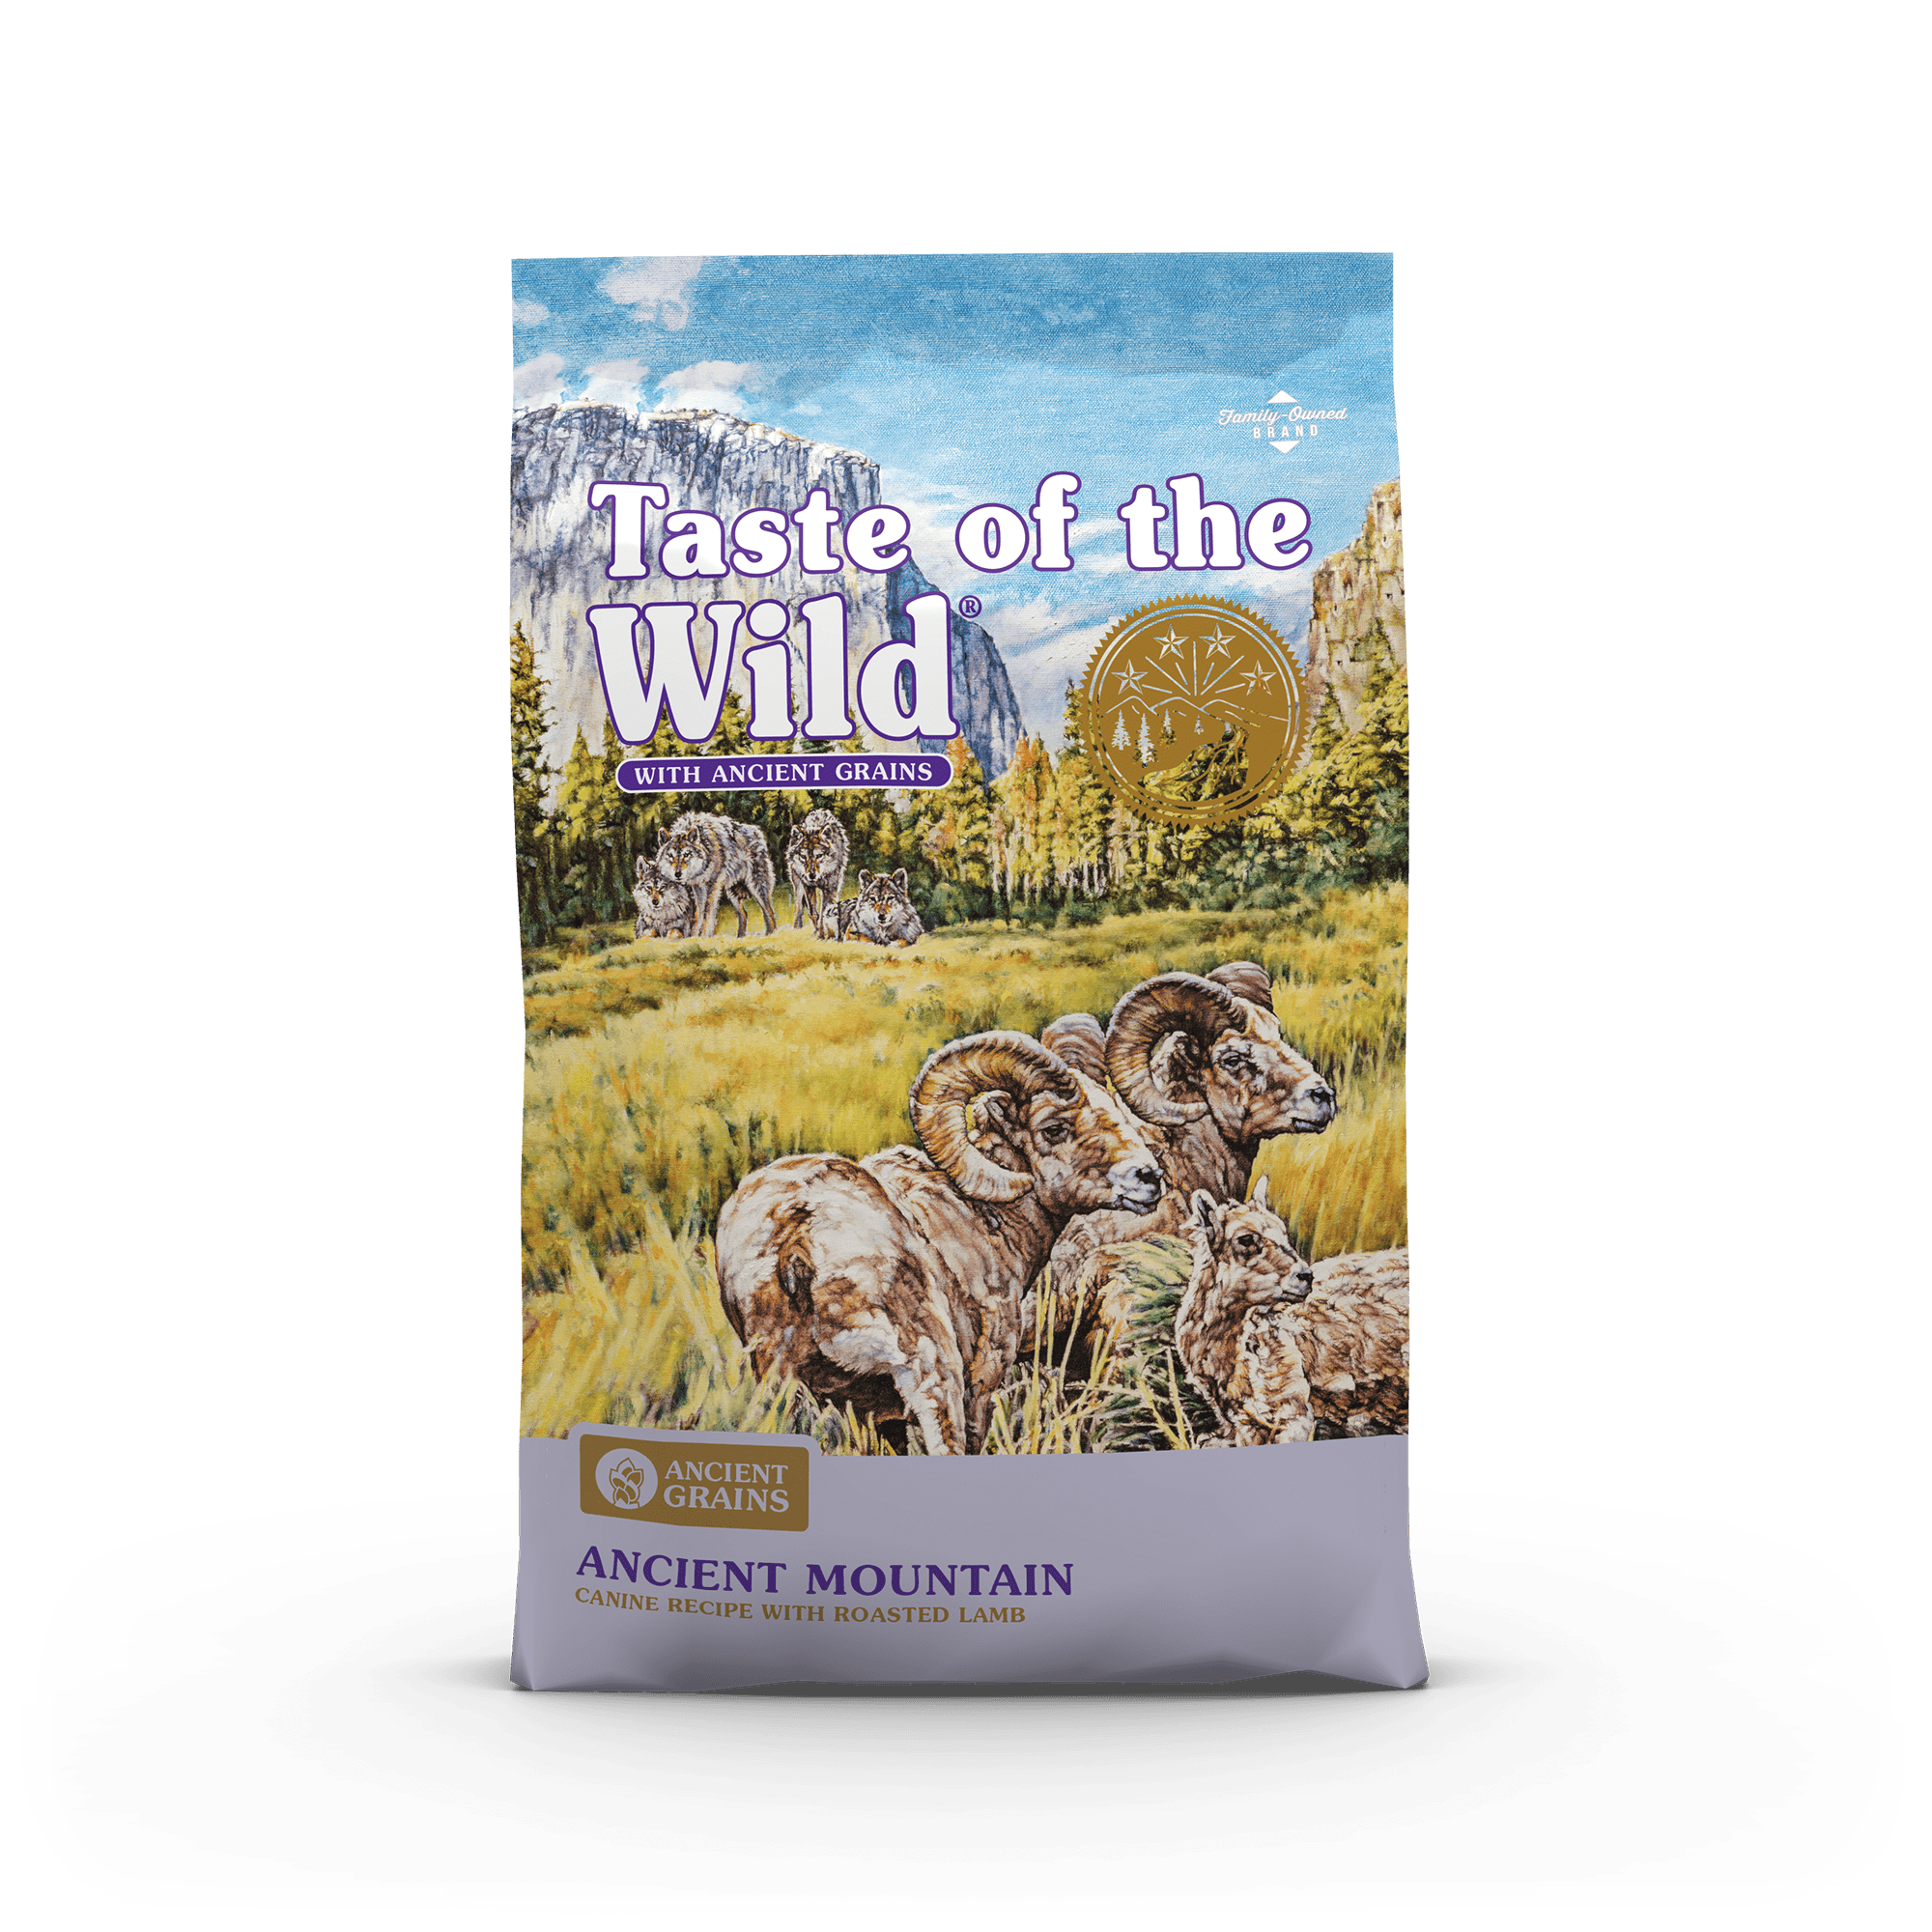 Taste of the Wild Ancient Grains  Ancient Mountain Canine Recipe